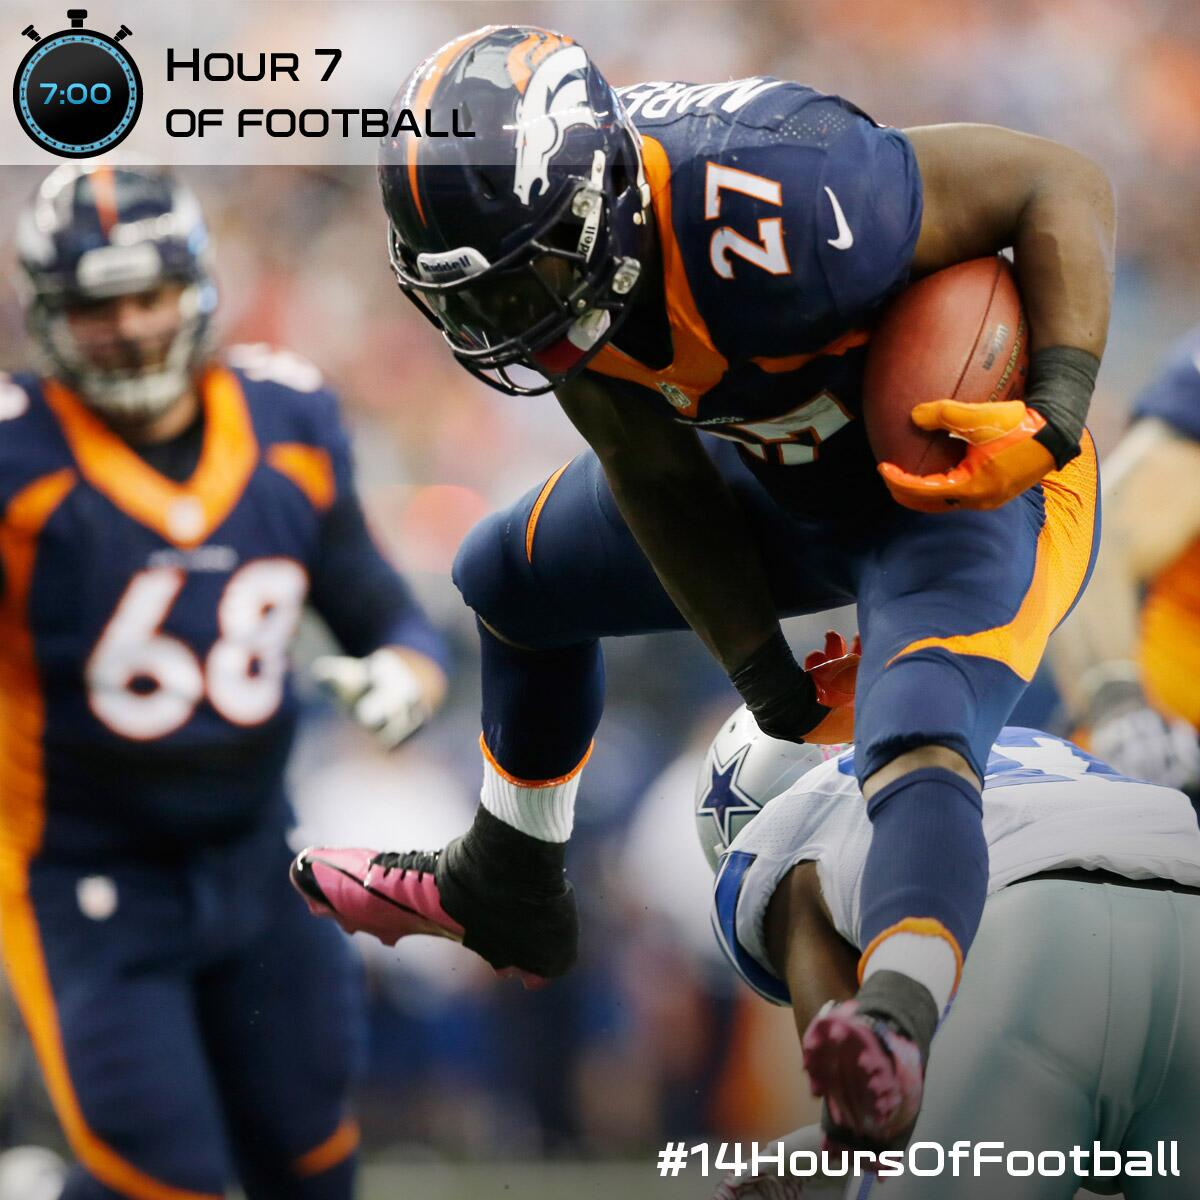 Tie game.   You probably shouldn't change the channel. #DENvsDAL #14HoursOfFootball http://t.co/Ypcke1Vrnu